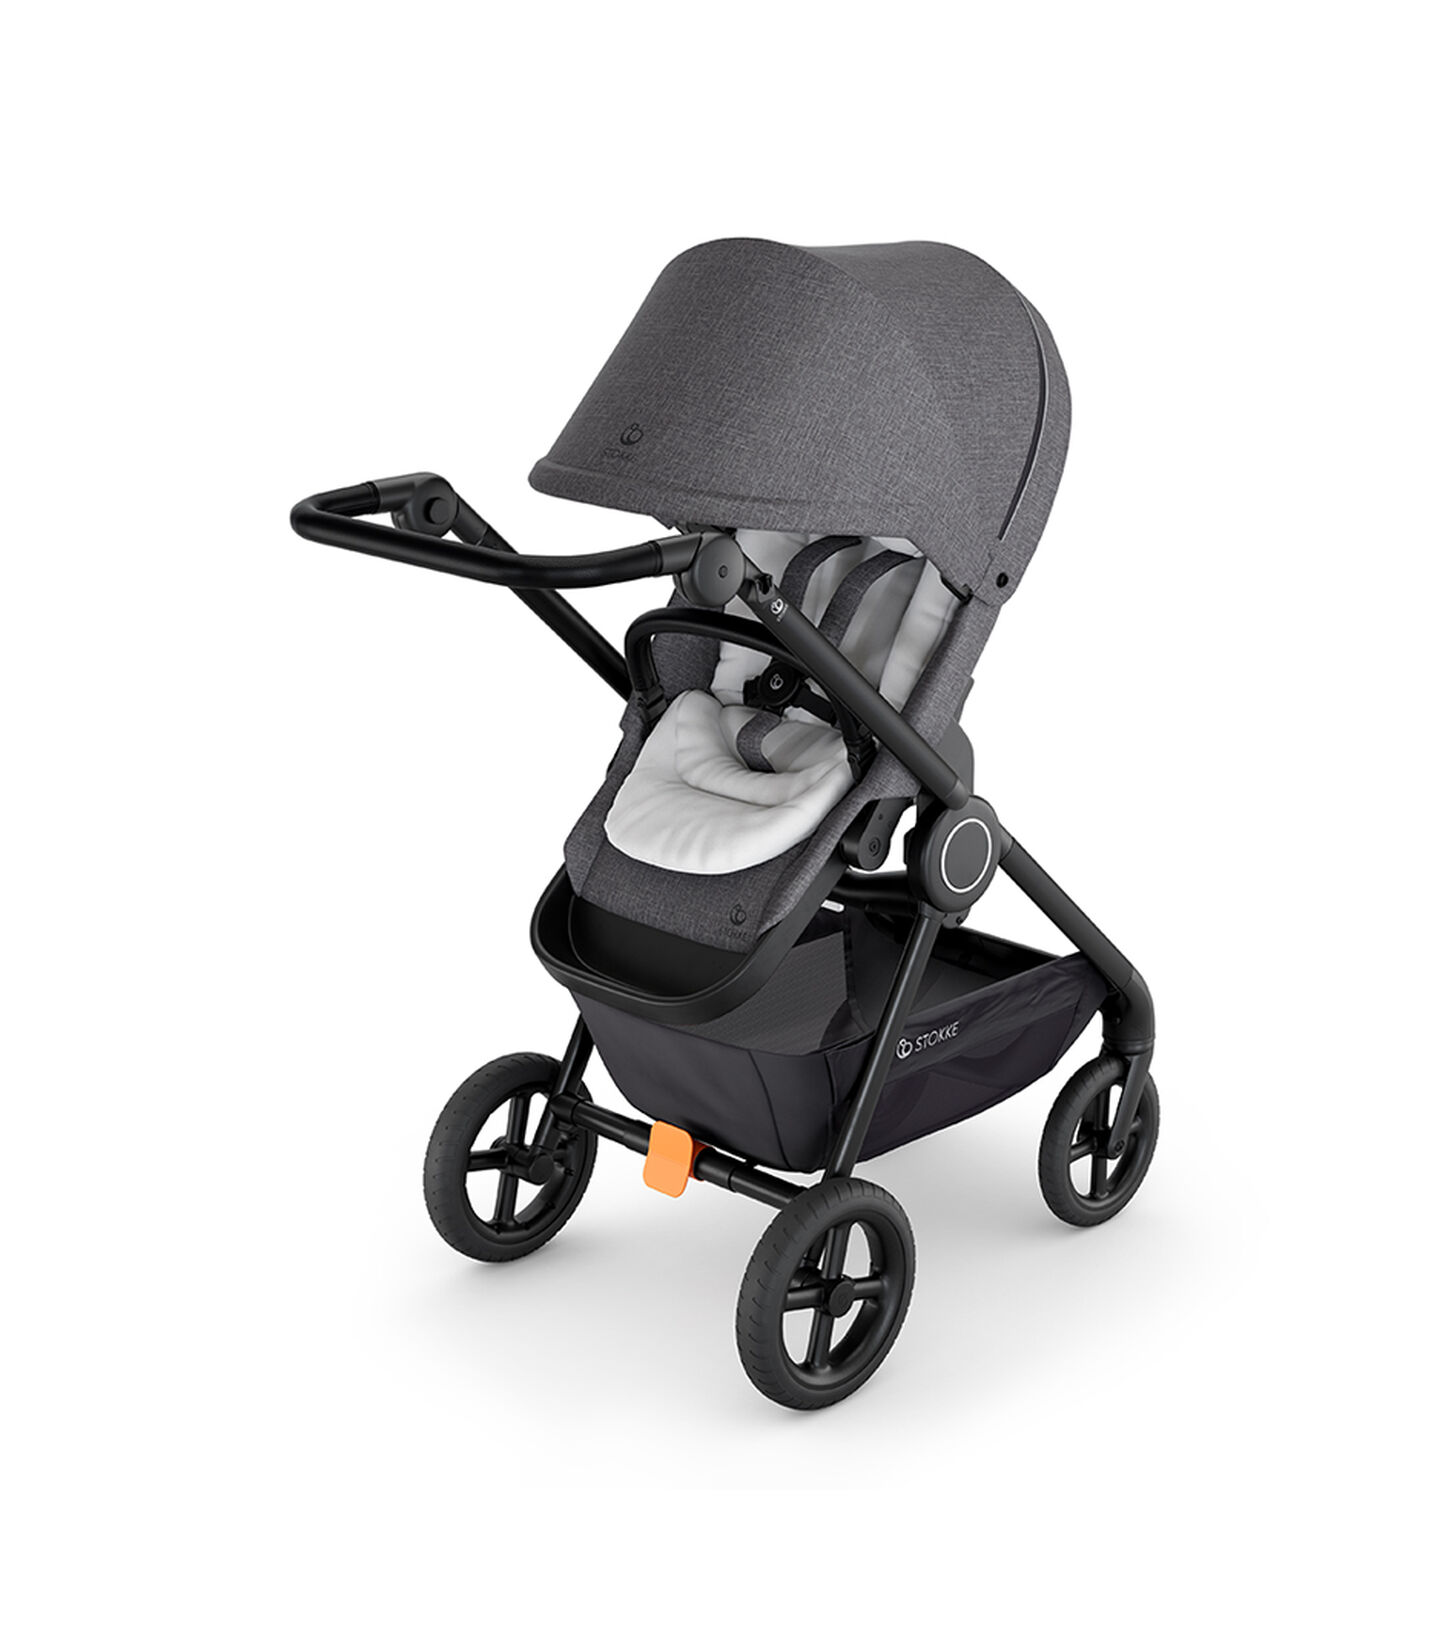 Stokke® Beat™ with Black Melange Seat and Stokke® Stroller Infant Insert White. view 2